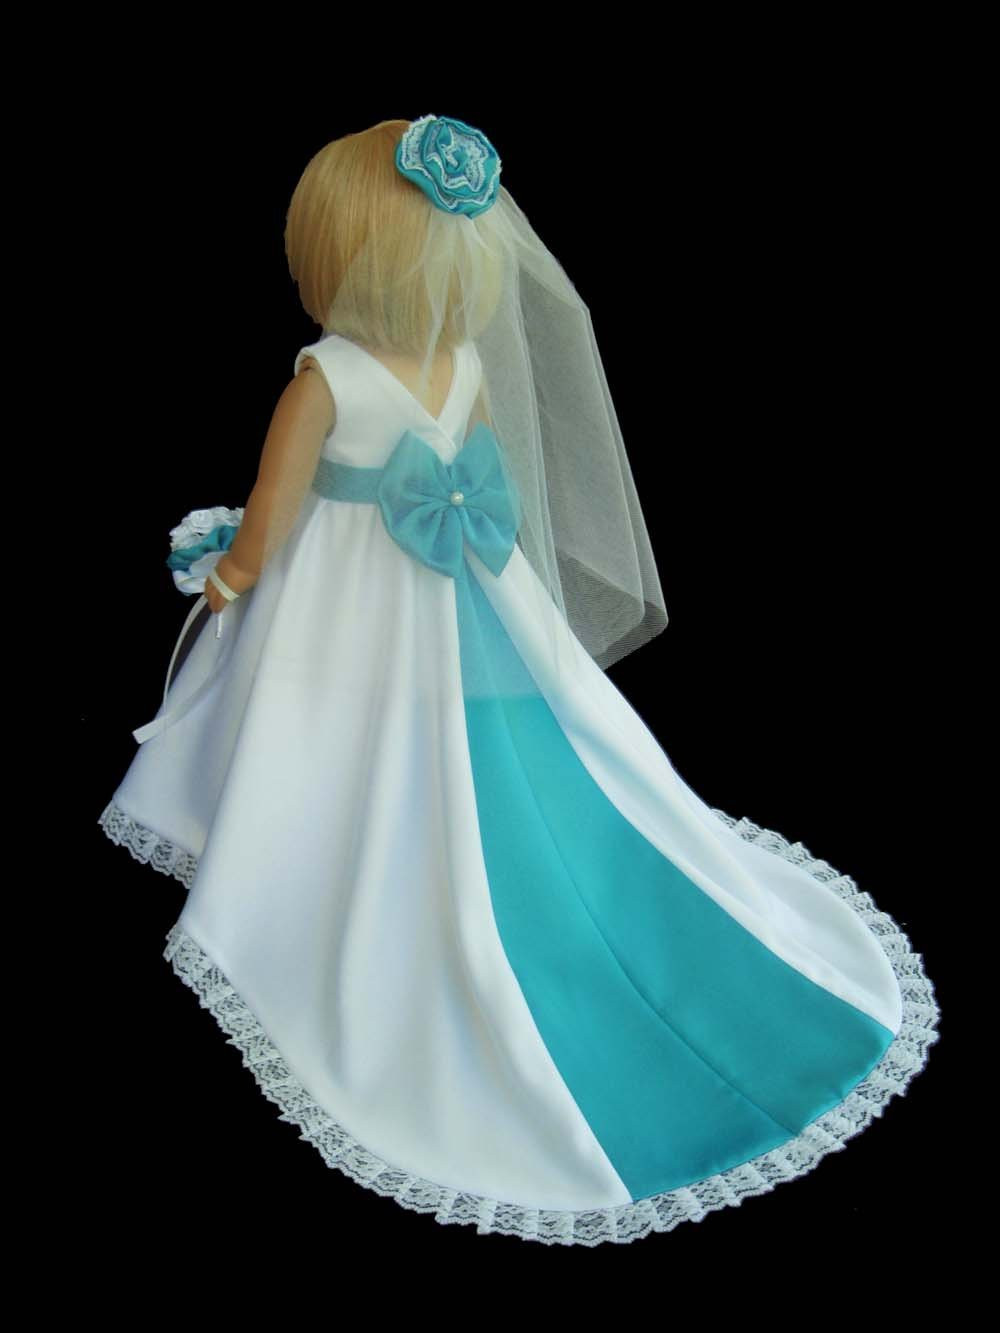 Best Of 301 Moved Permanently American Girl Doll Wedding Dress Of Inspirational 2015 Romantic Wedding Dress Clothing for Dolls Mini White American Girl Doll Wedding Dress